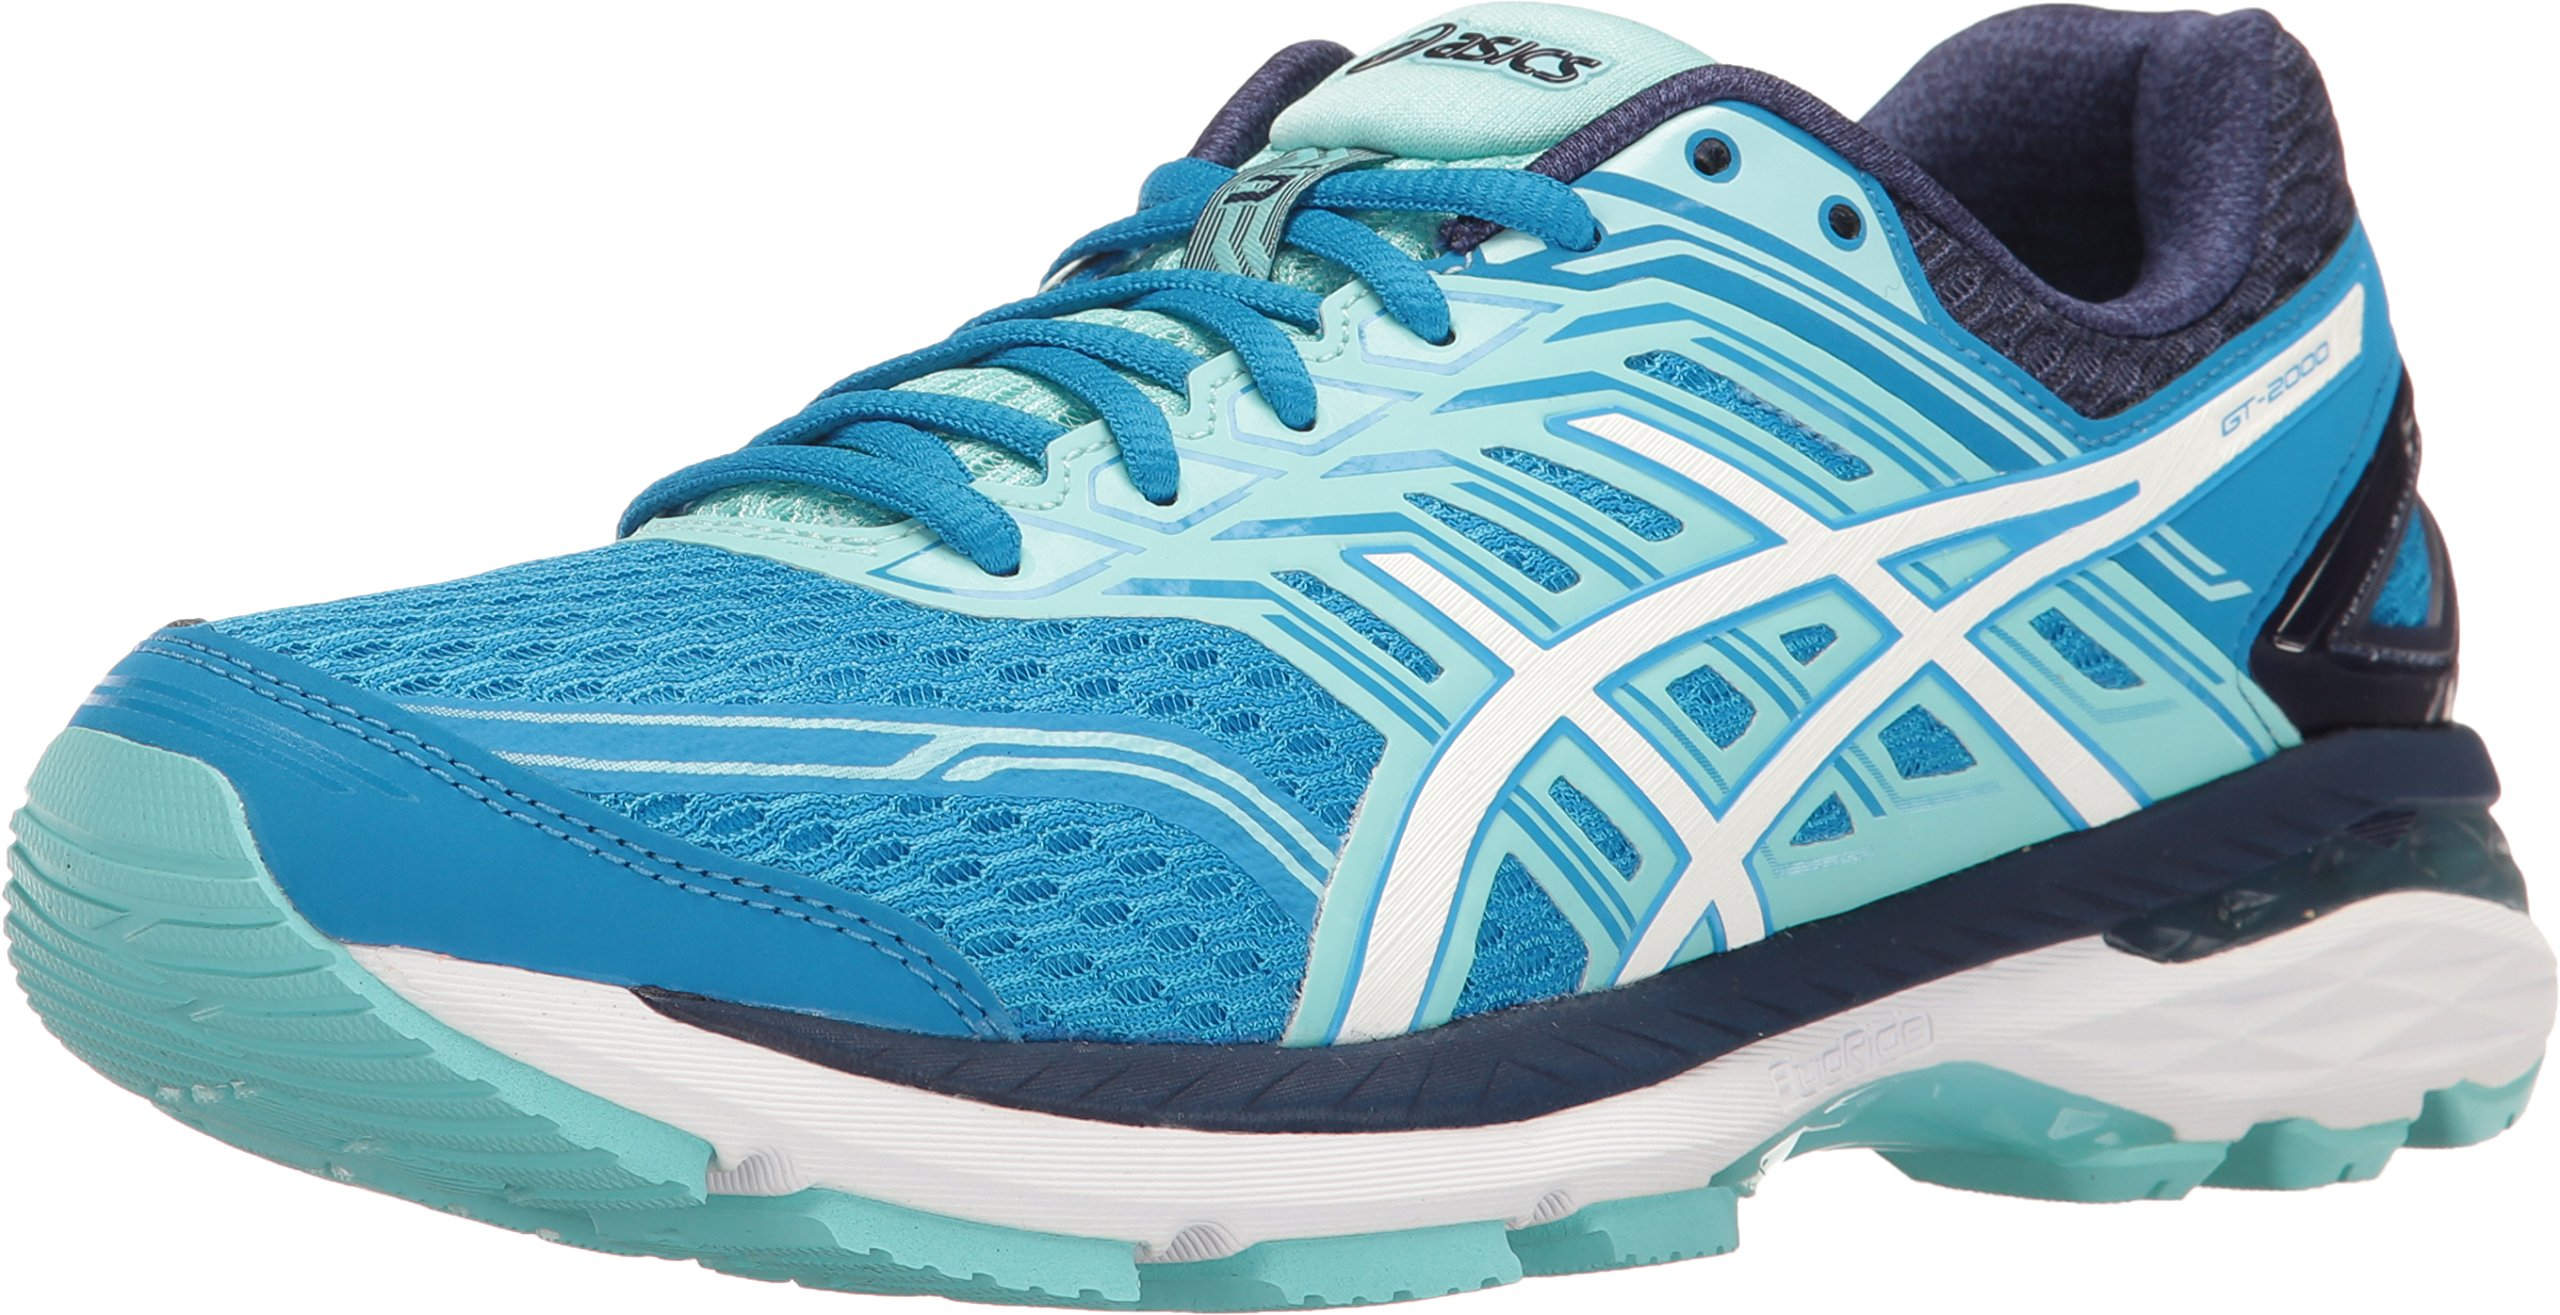 ASICS Women's GT-2000 5 Running Shoe, Diva Blue/White/Aqua Splash, 10.5 M US